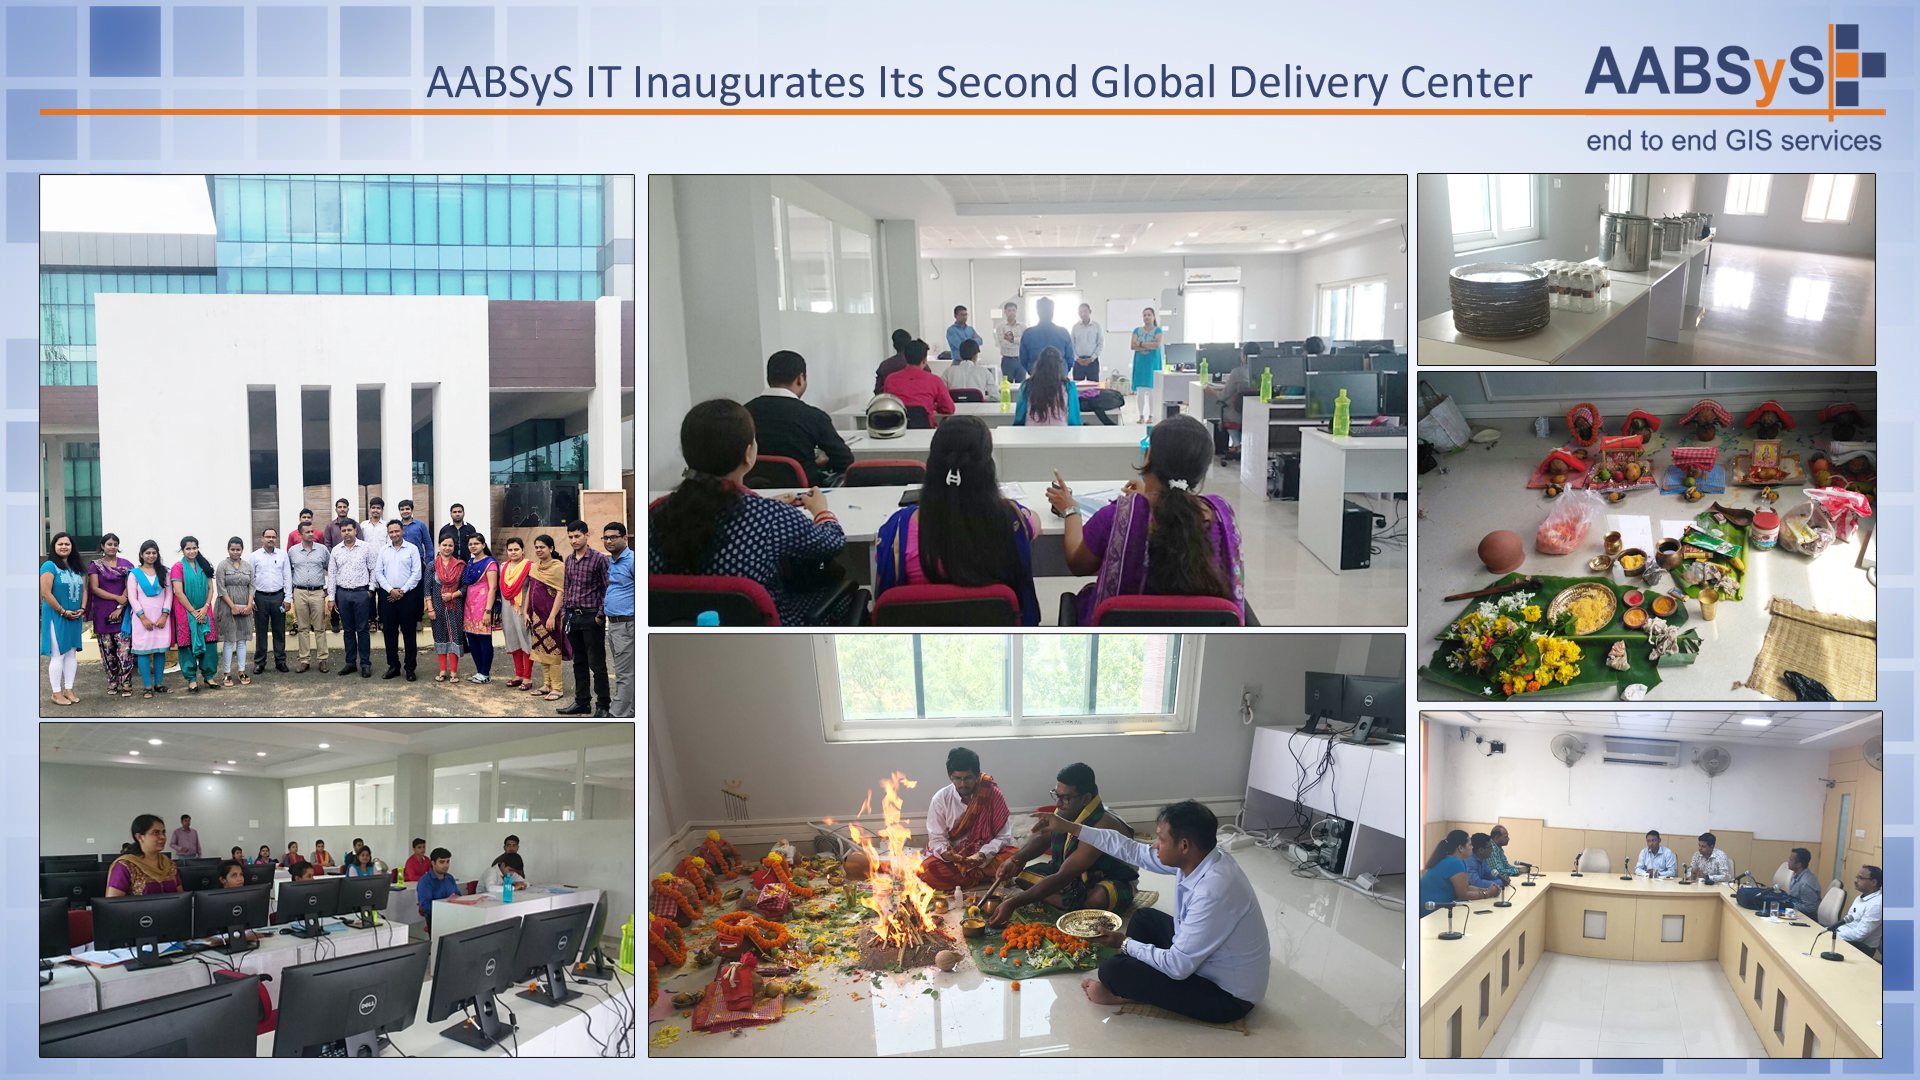 AABSyS IT Opens Its Second Global Delivery Center